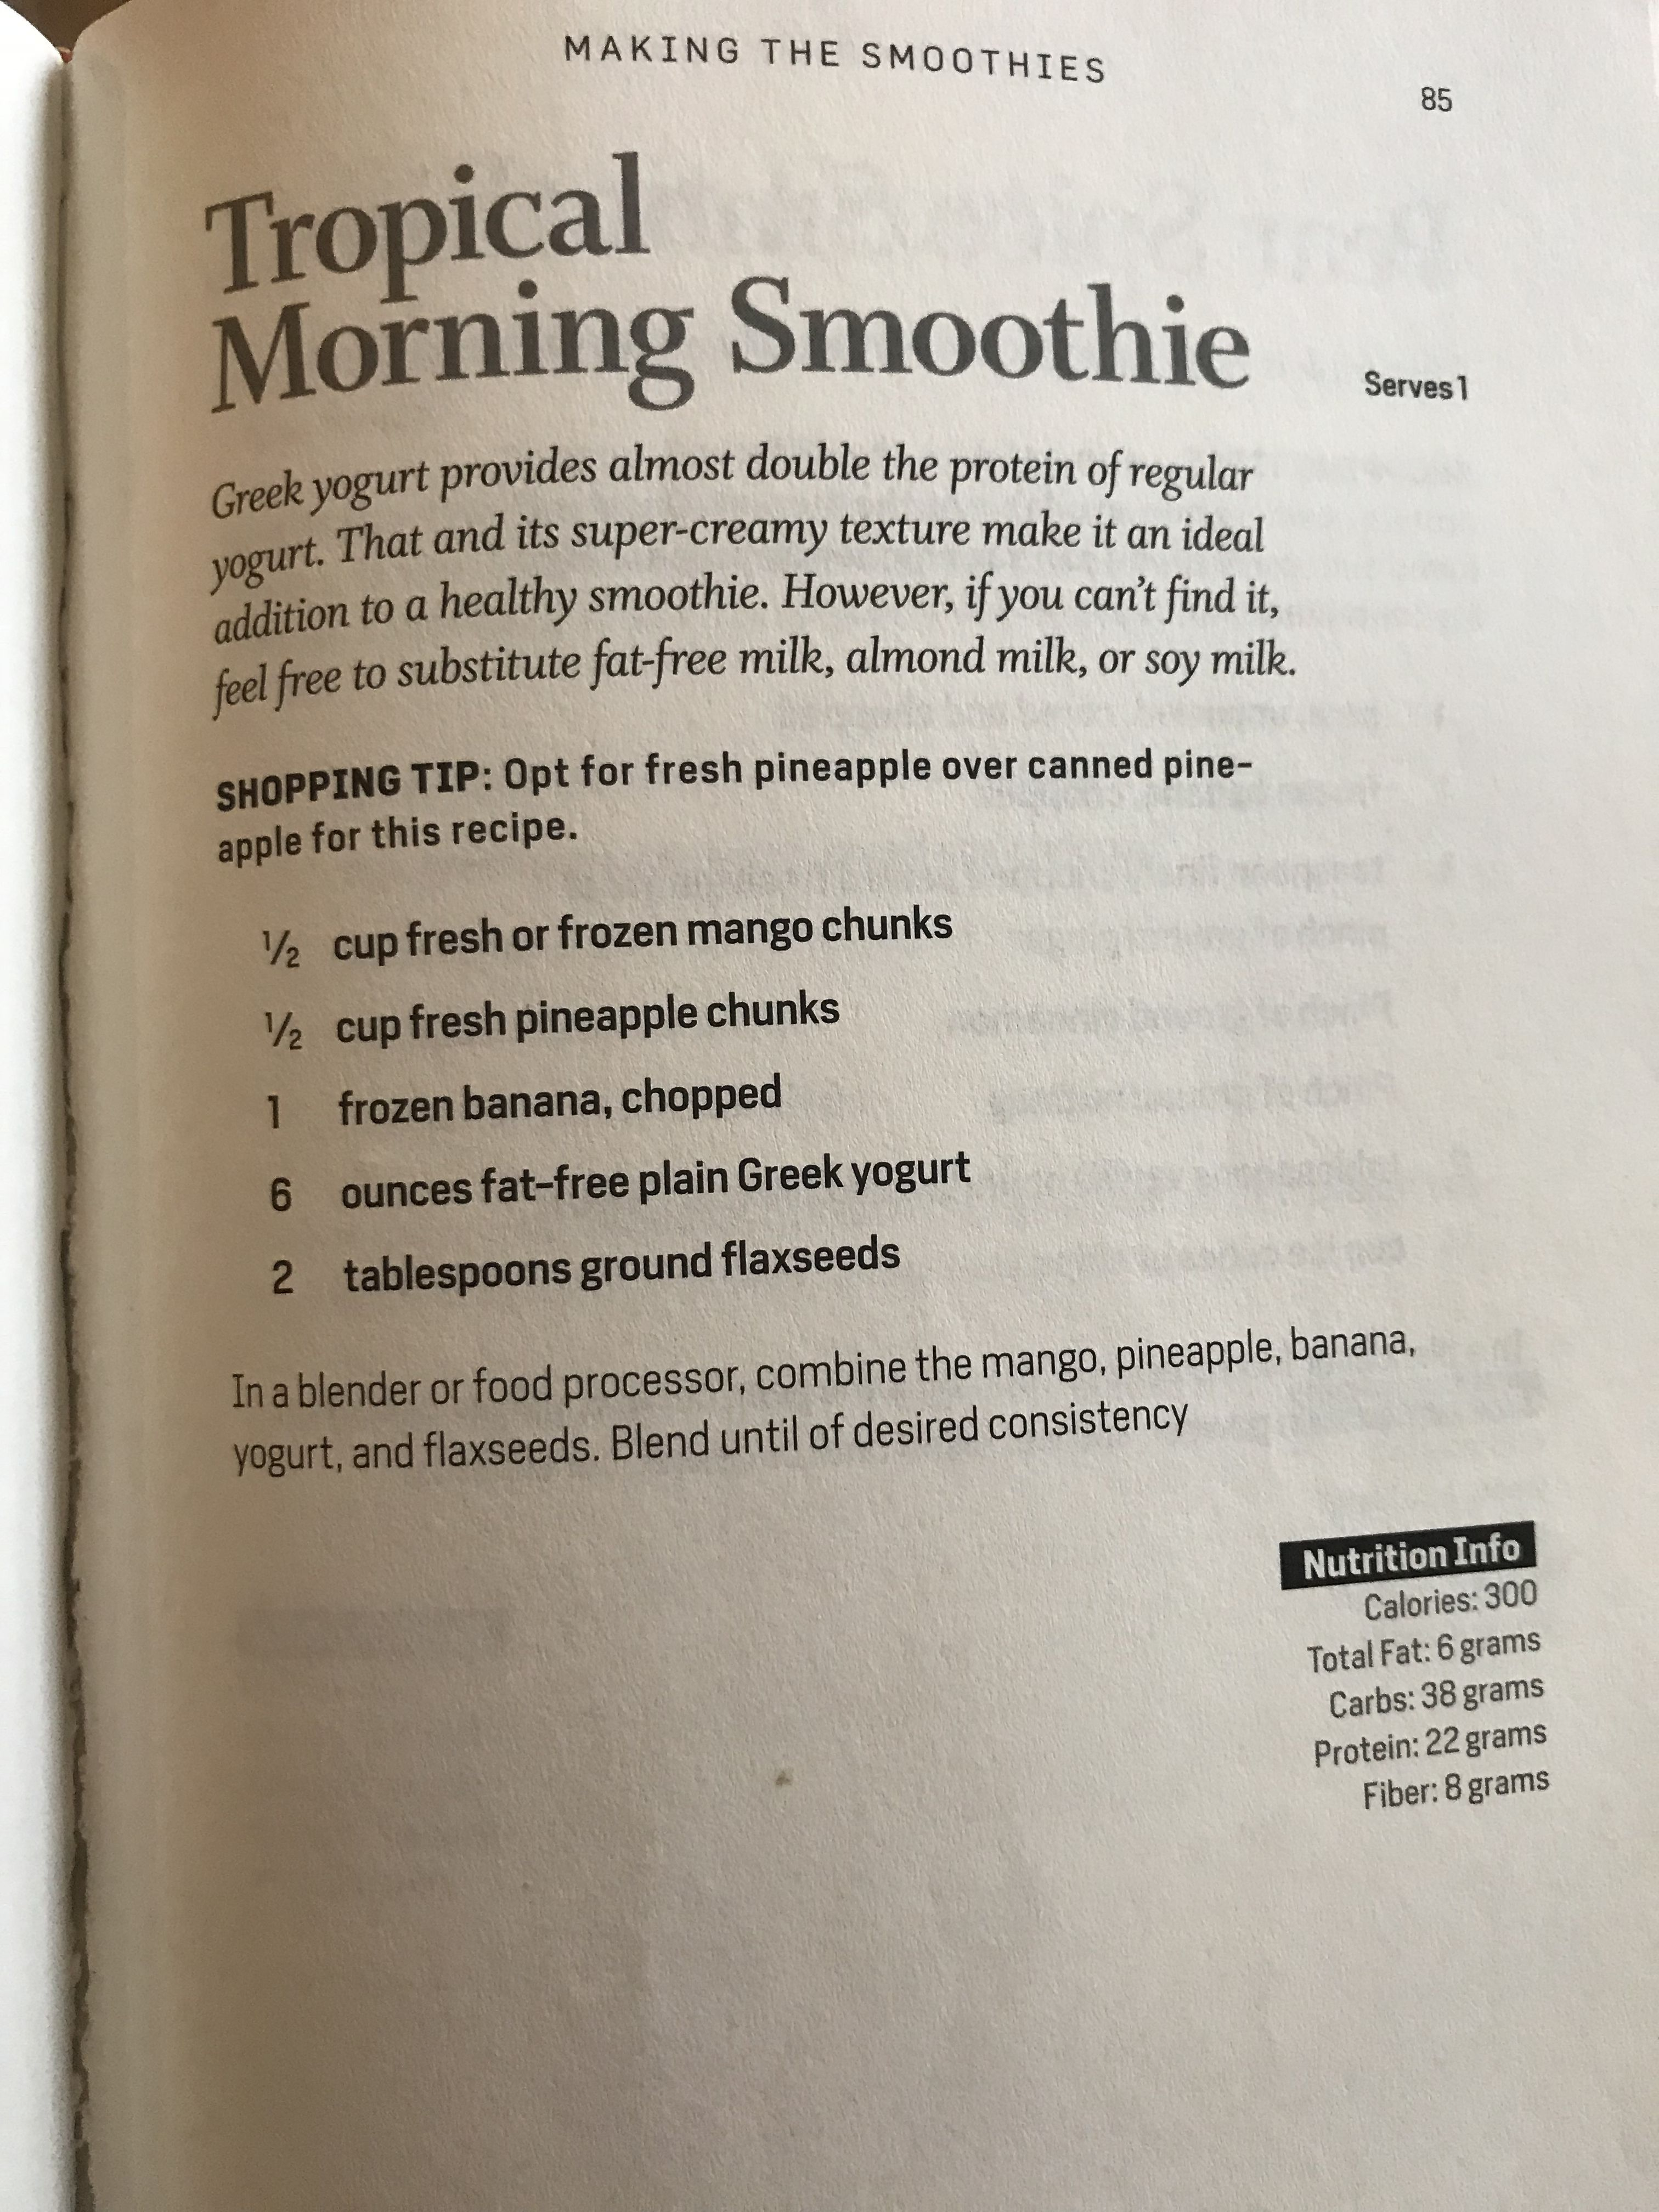 Tropical Morning Smoothie Body Reset Diet Body Reset Smoothie Diet